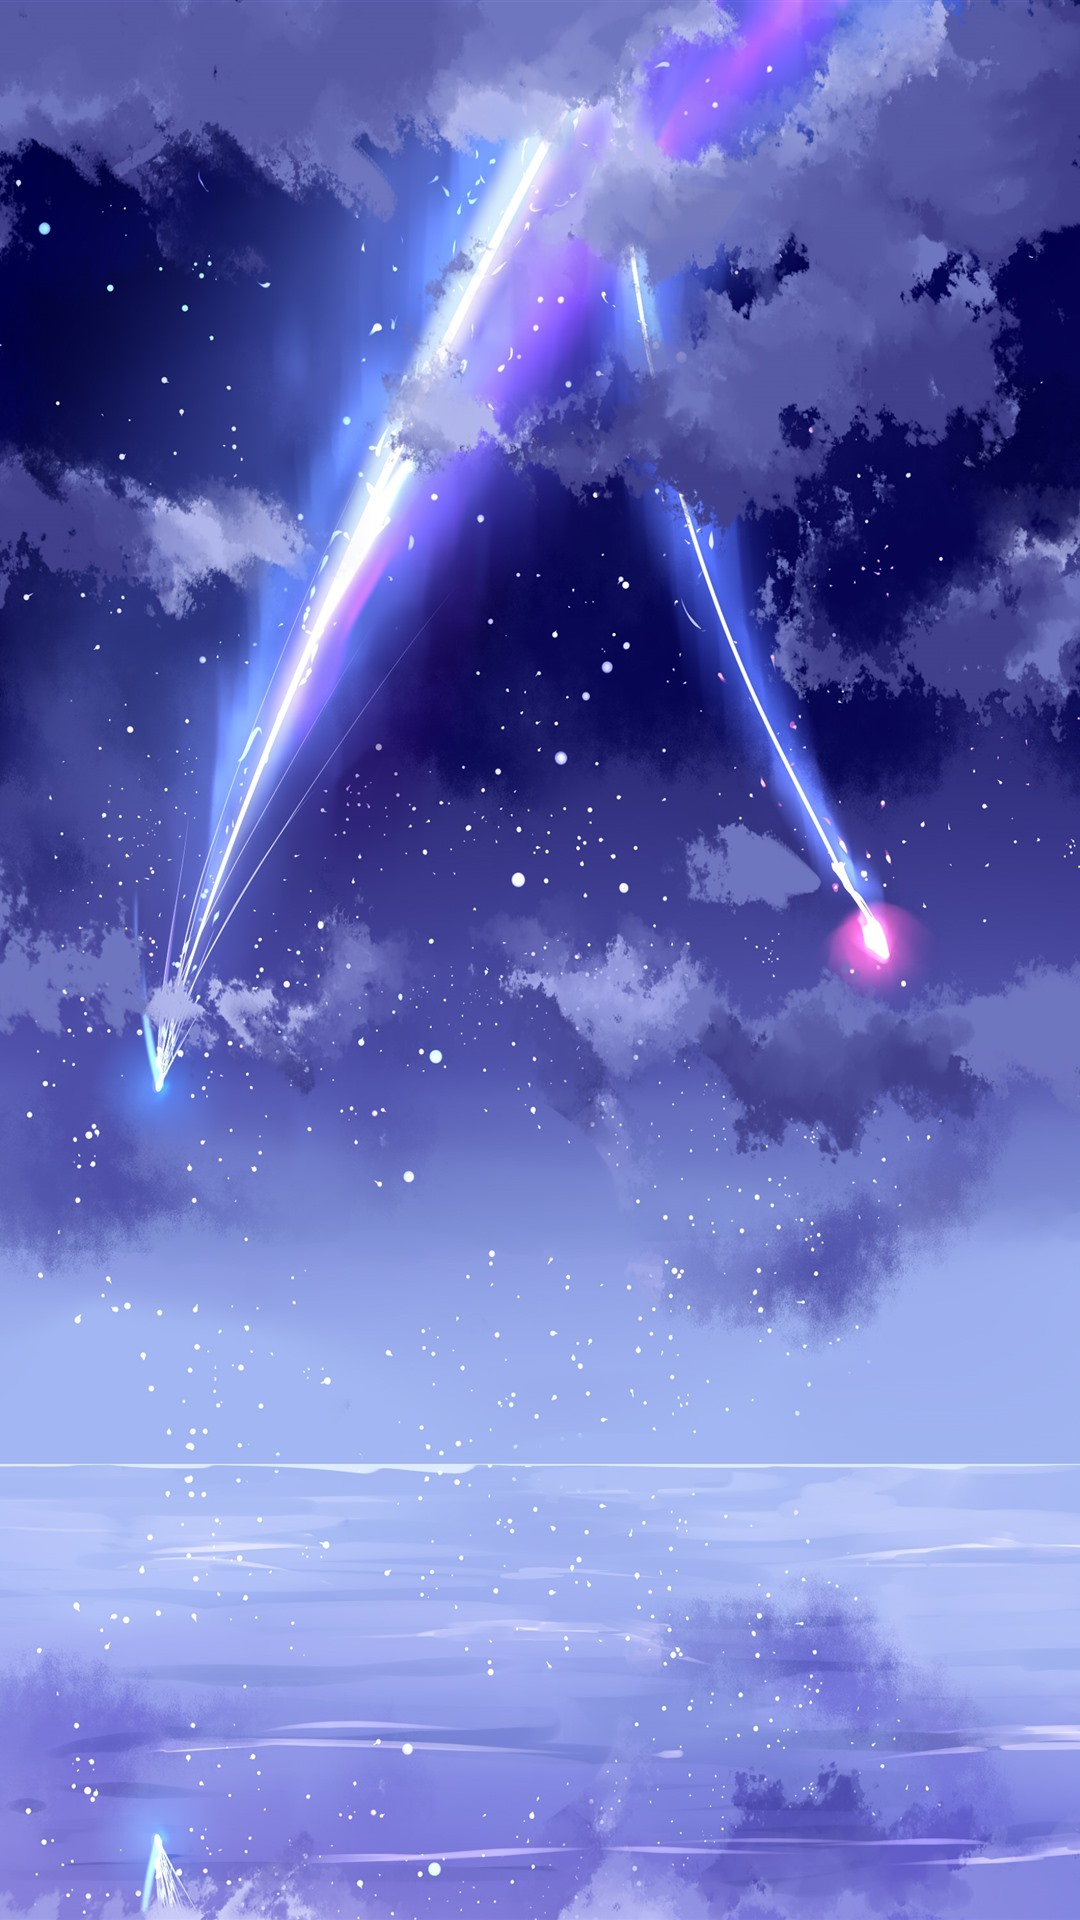 Wallpaper Your Name, beautiful sky, meteor, anime 3840x2160 UHD 4K Picture, Image